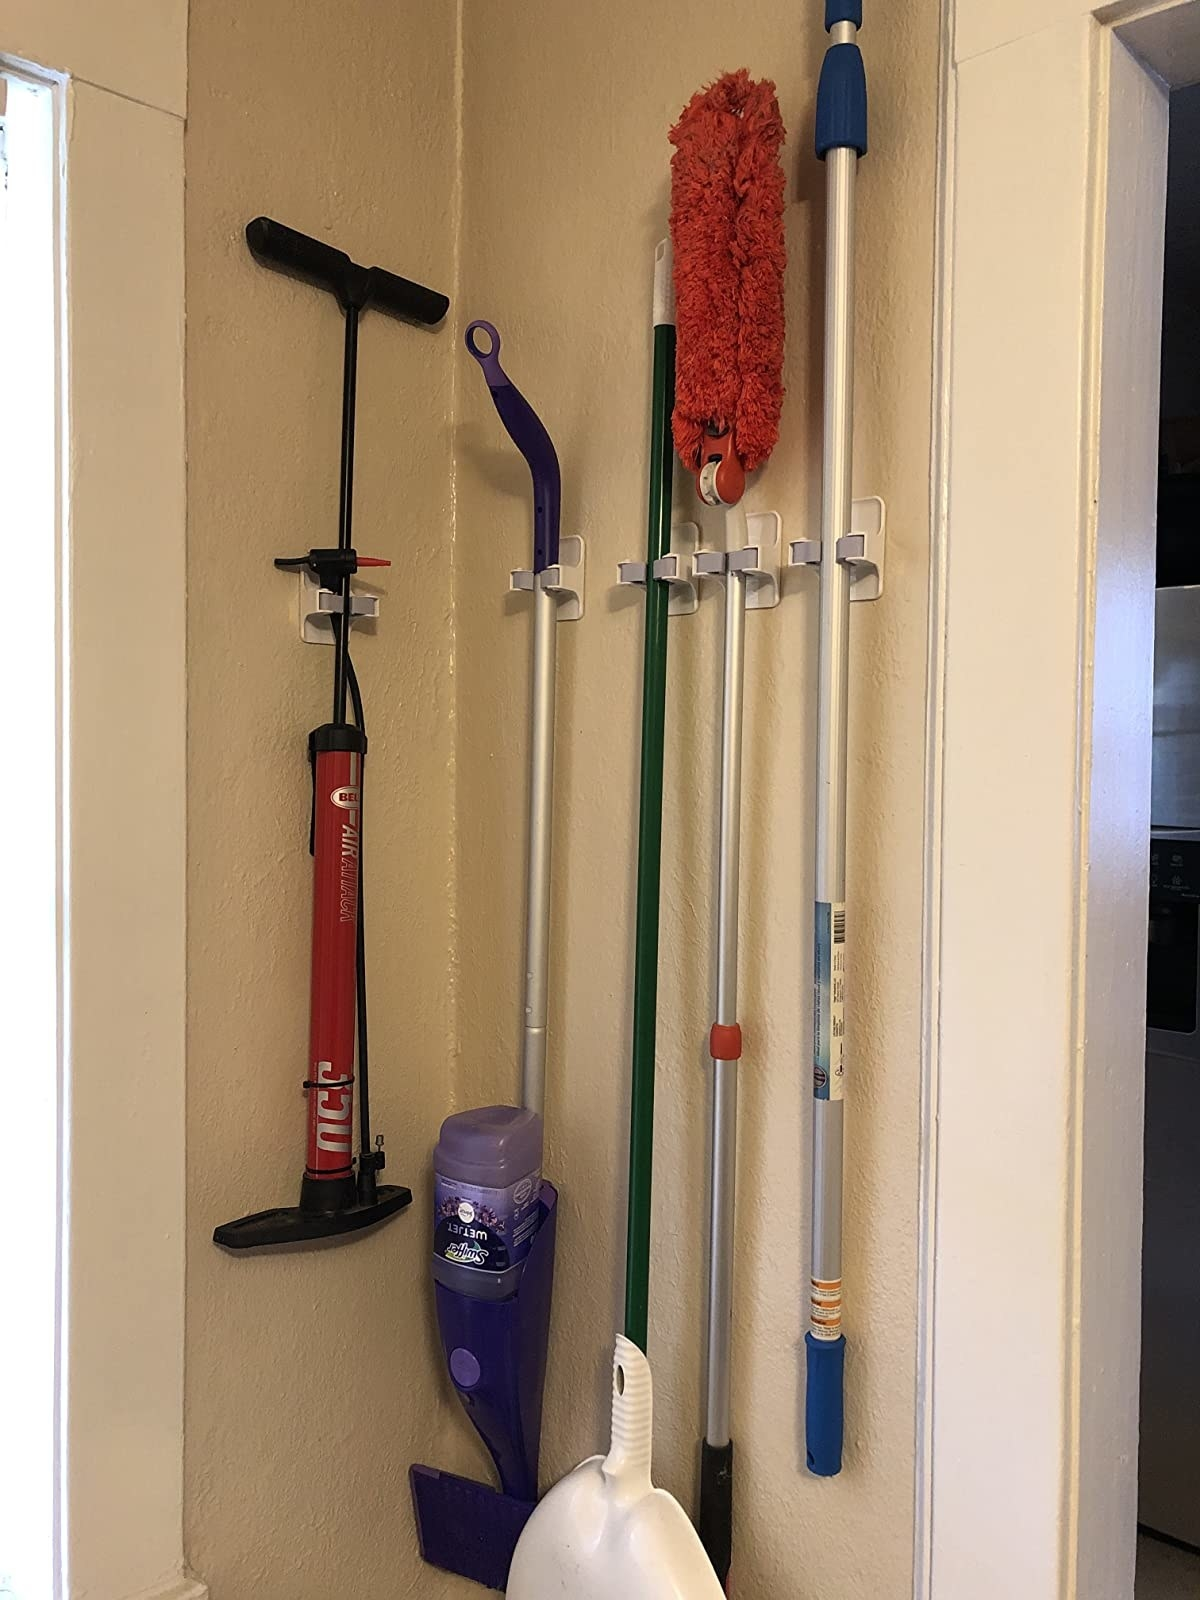 reviewer photo showing the individual clips arranged on a wall to hold a brom, Swiffer, duster and tire pump